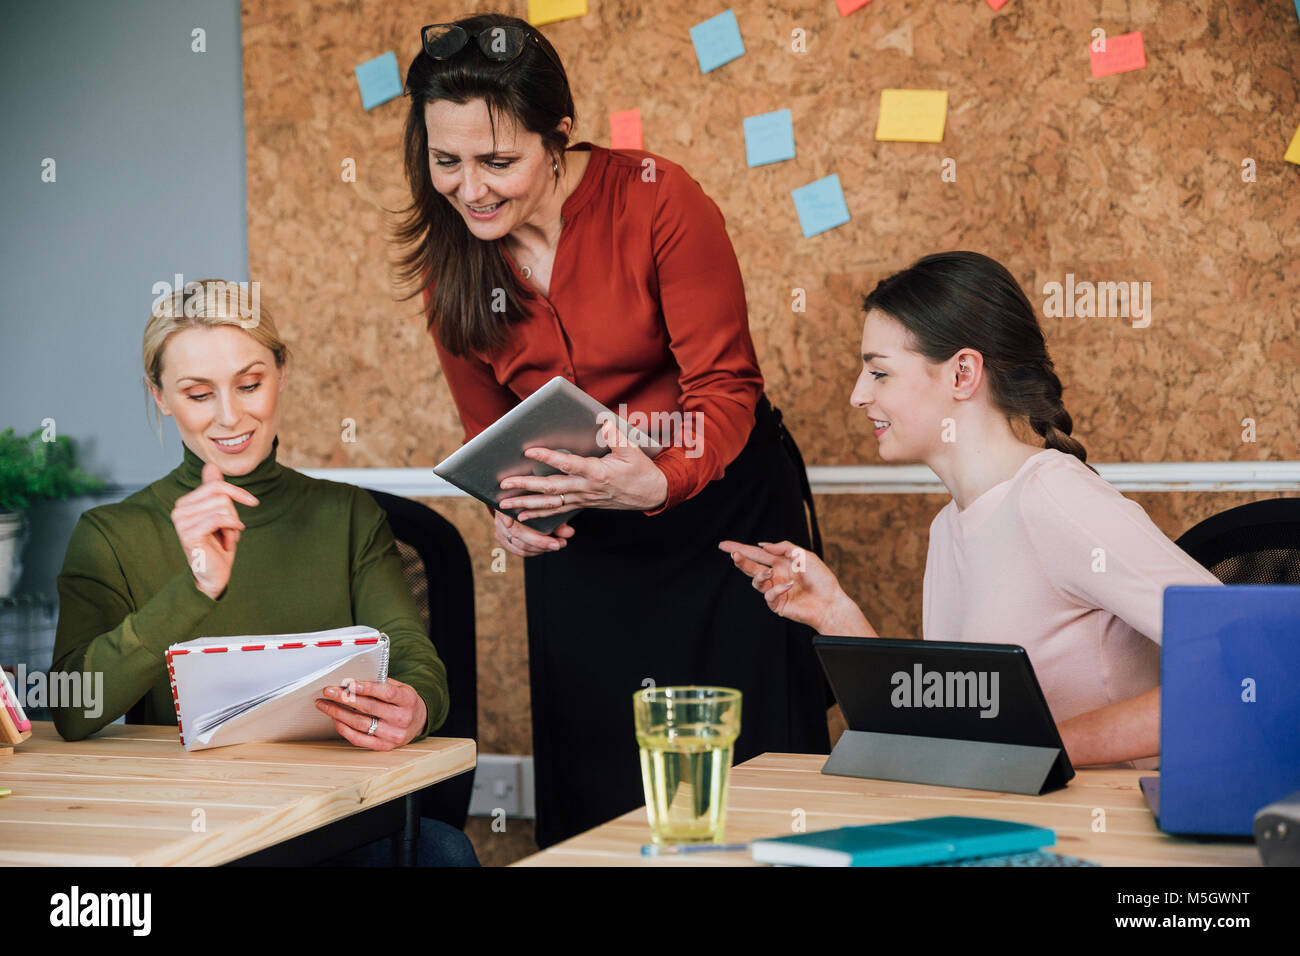 Women are working together in an office. They are talking as they use digital tablets. - Stock Image